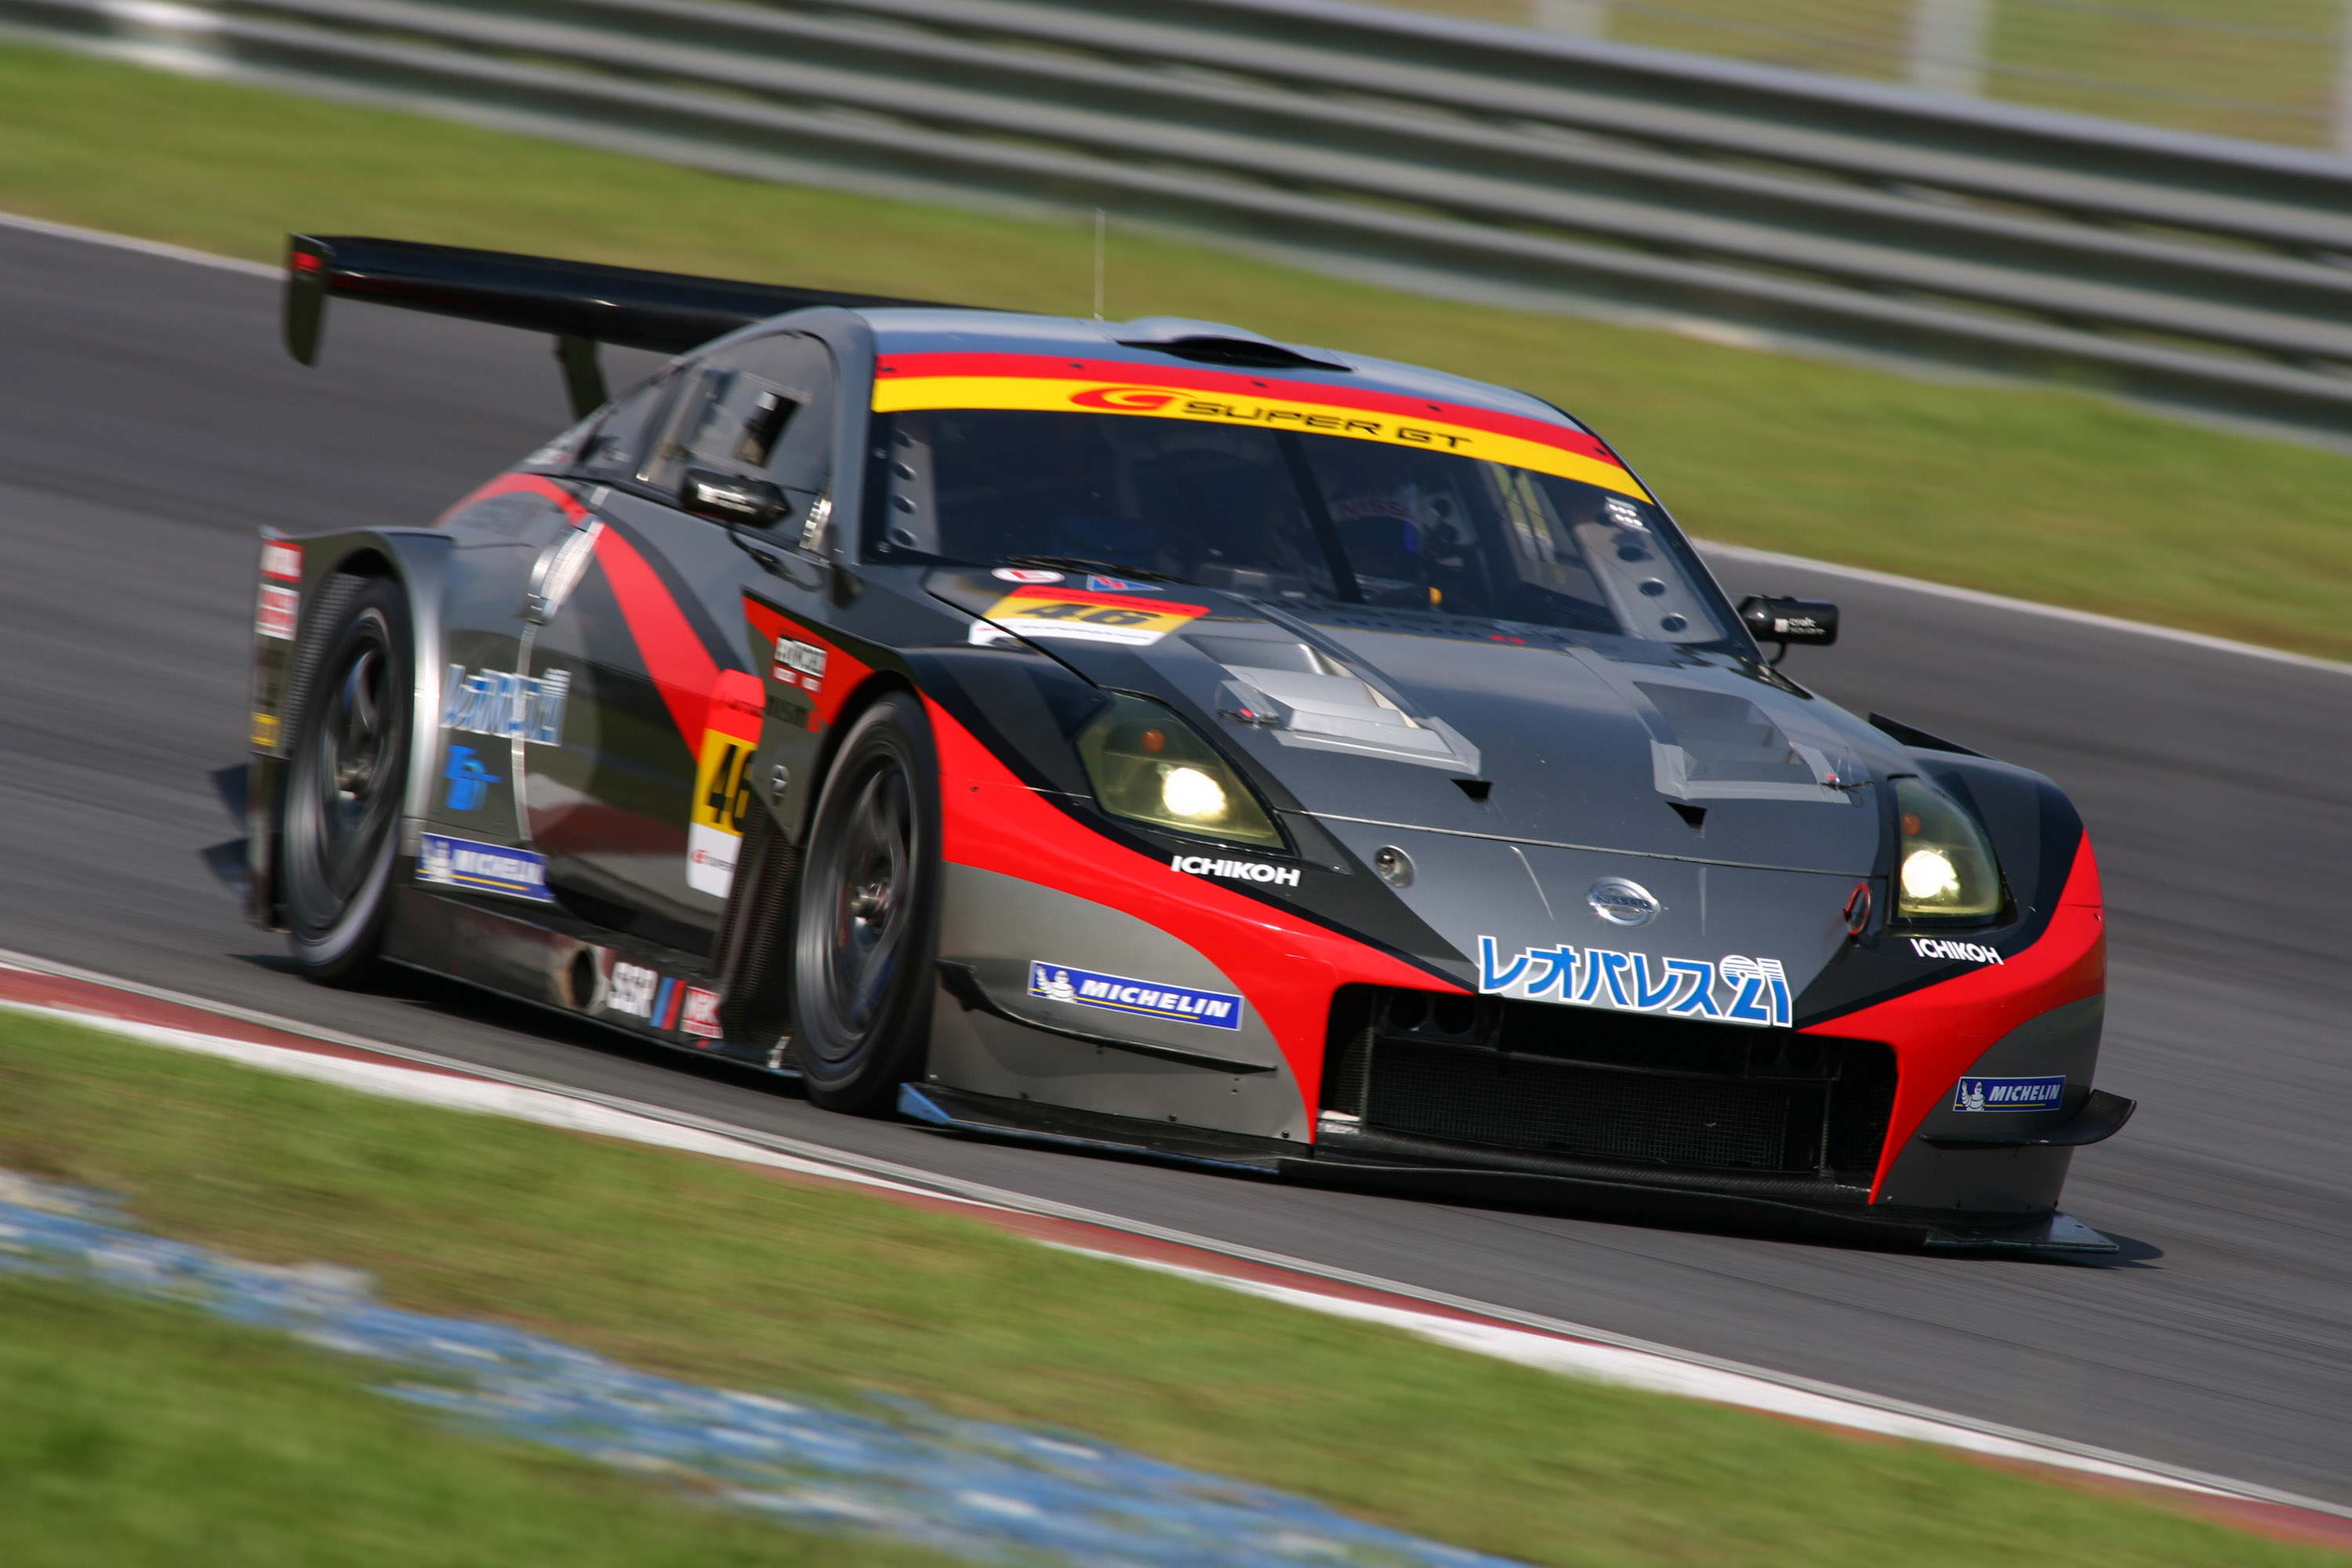 nissan gt r takes point scoring 8th place super gt 2008 round 5 race report. Black Bedroom Furniture Sets. Home Design Ideas